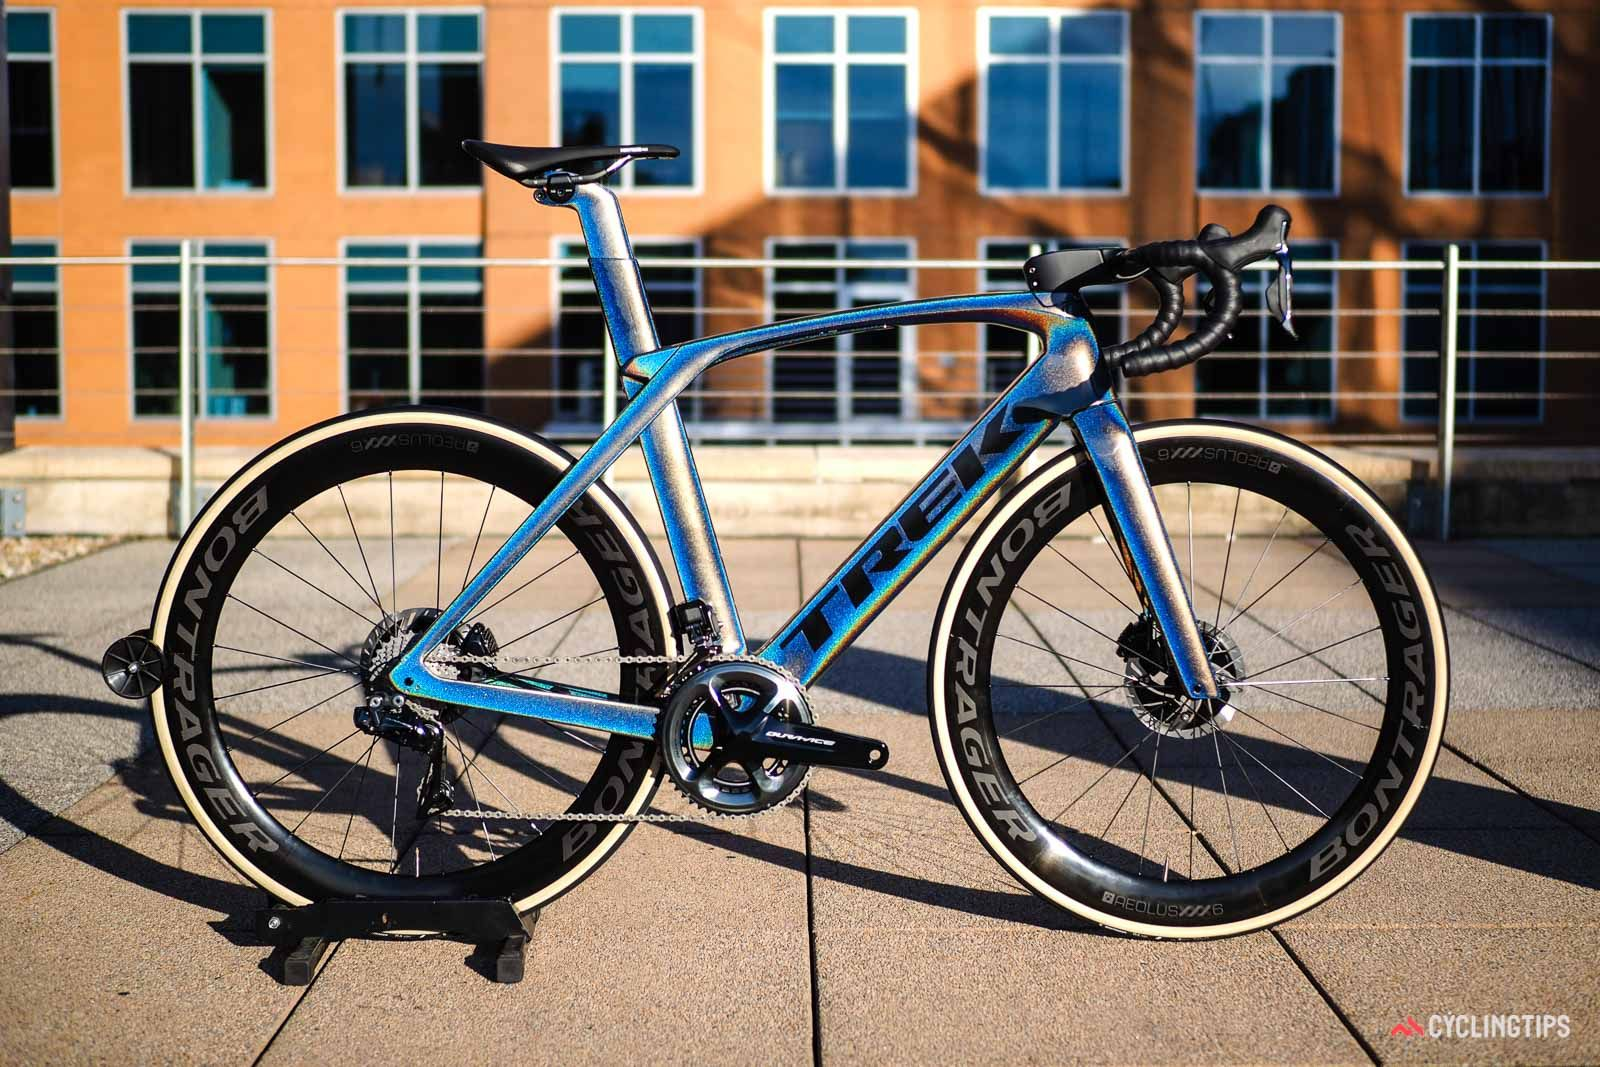 2019 Trek Madone Slr First Ride Review Upping The Ante Cyclingtips Bike Riding Benefits Trek Madone Trek Road Bikes